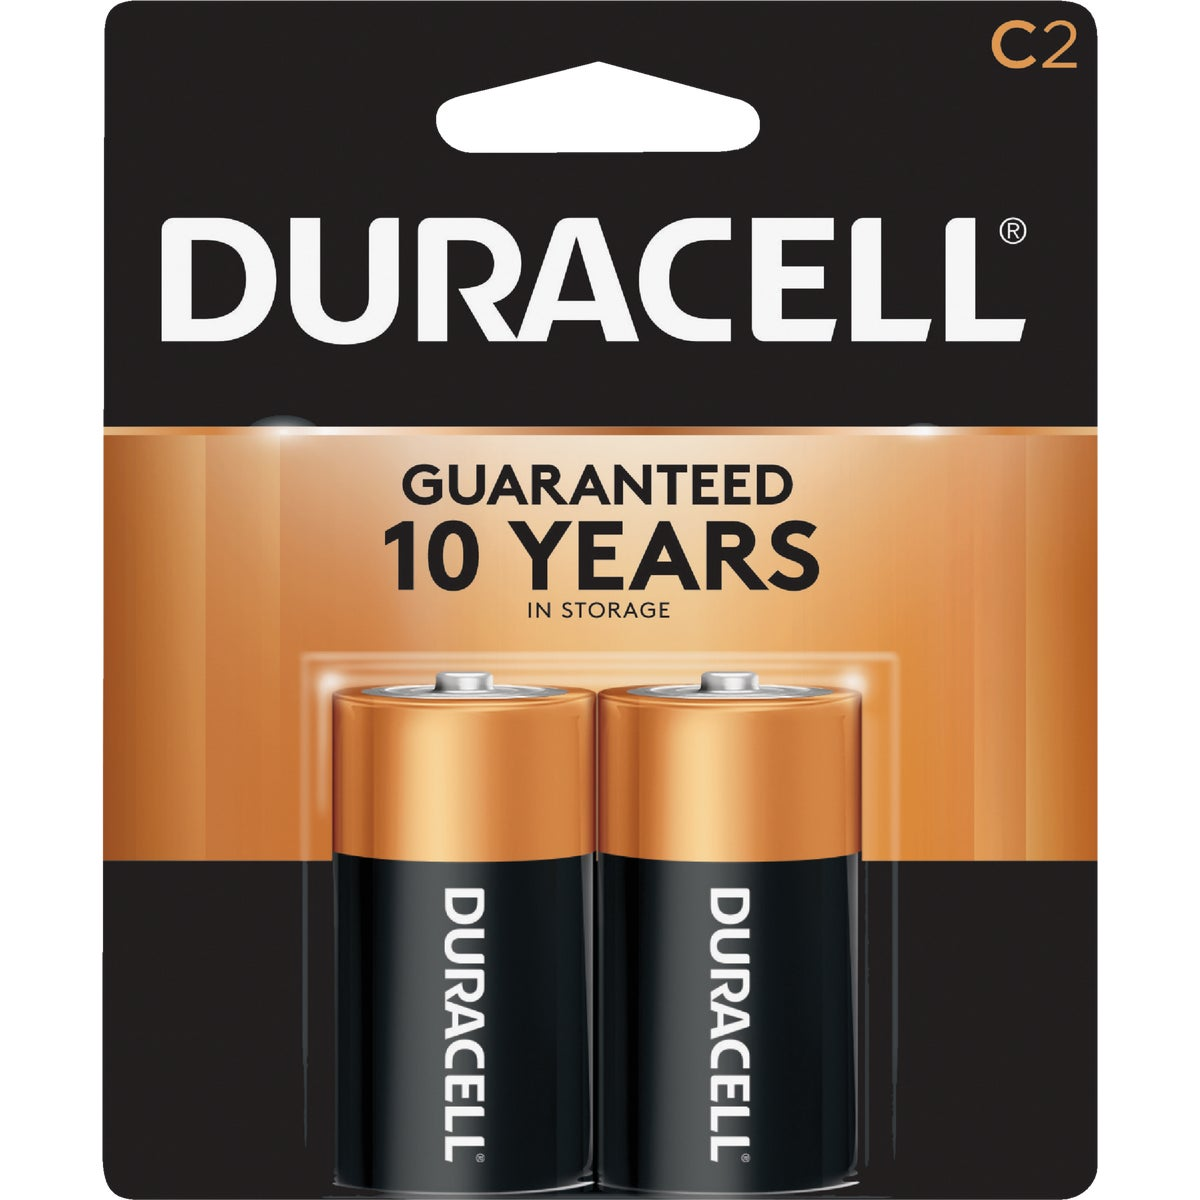 2PK C ALKALINE BATTERY - 09161 by P & G  Duracell